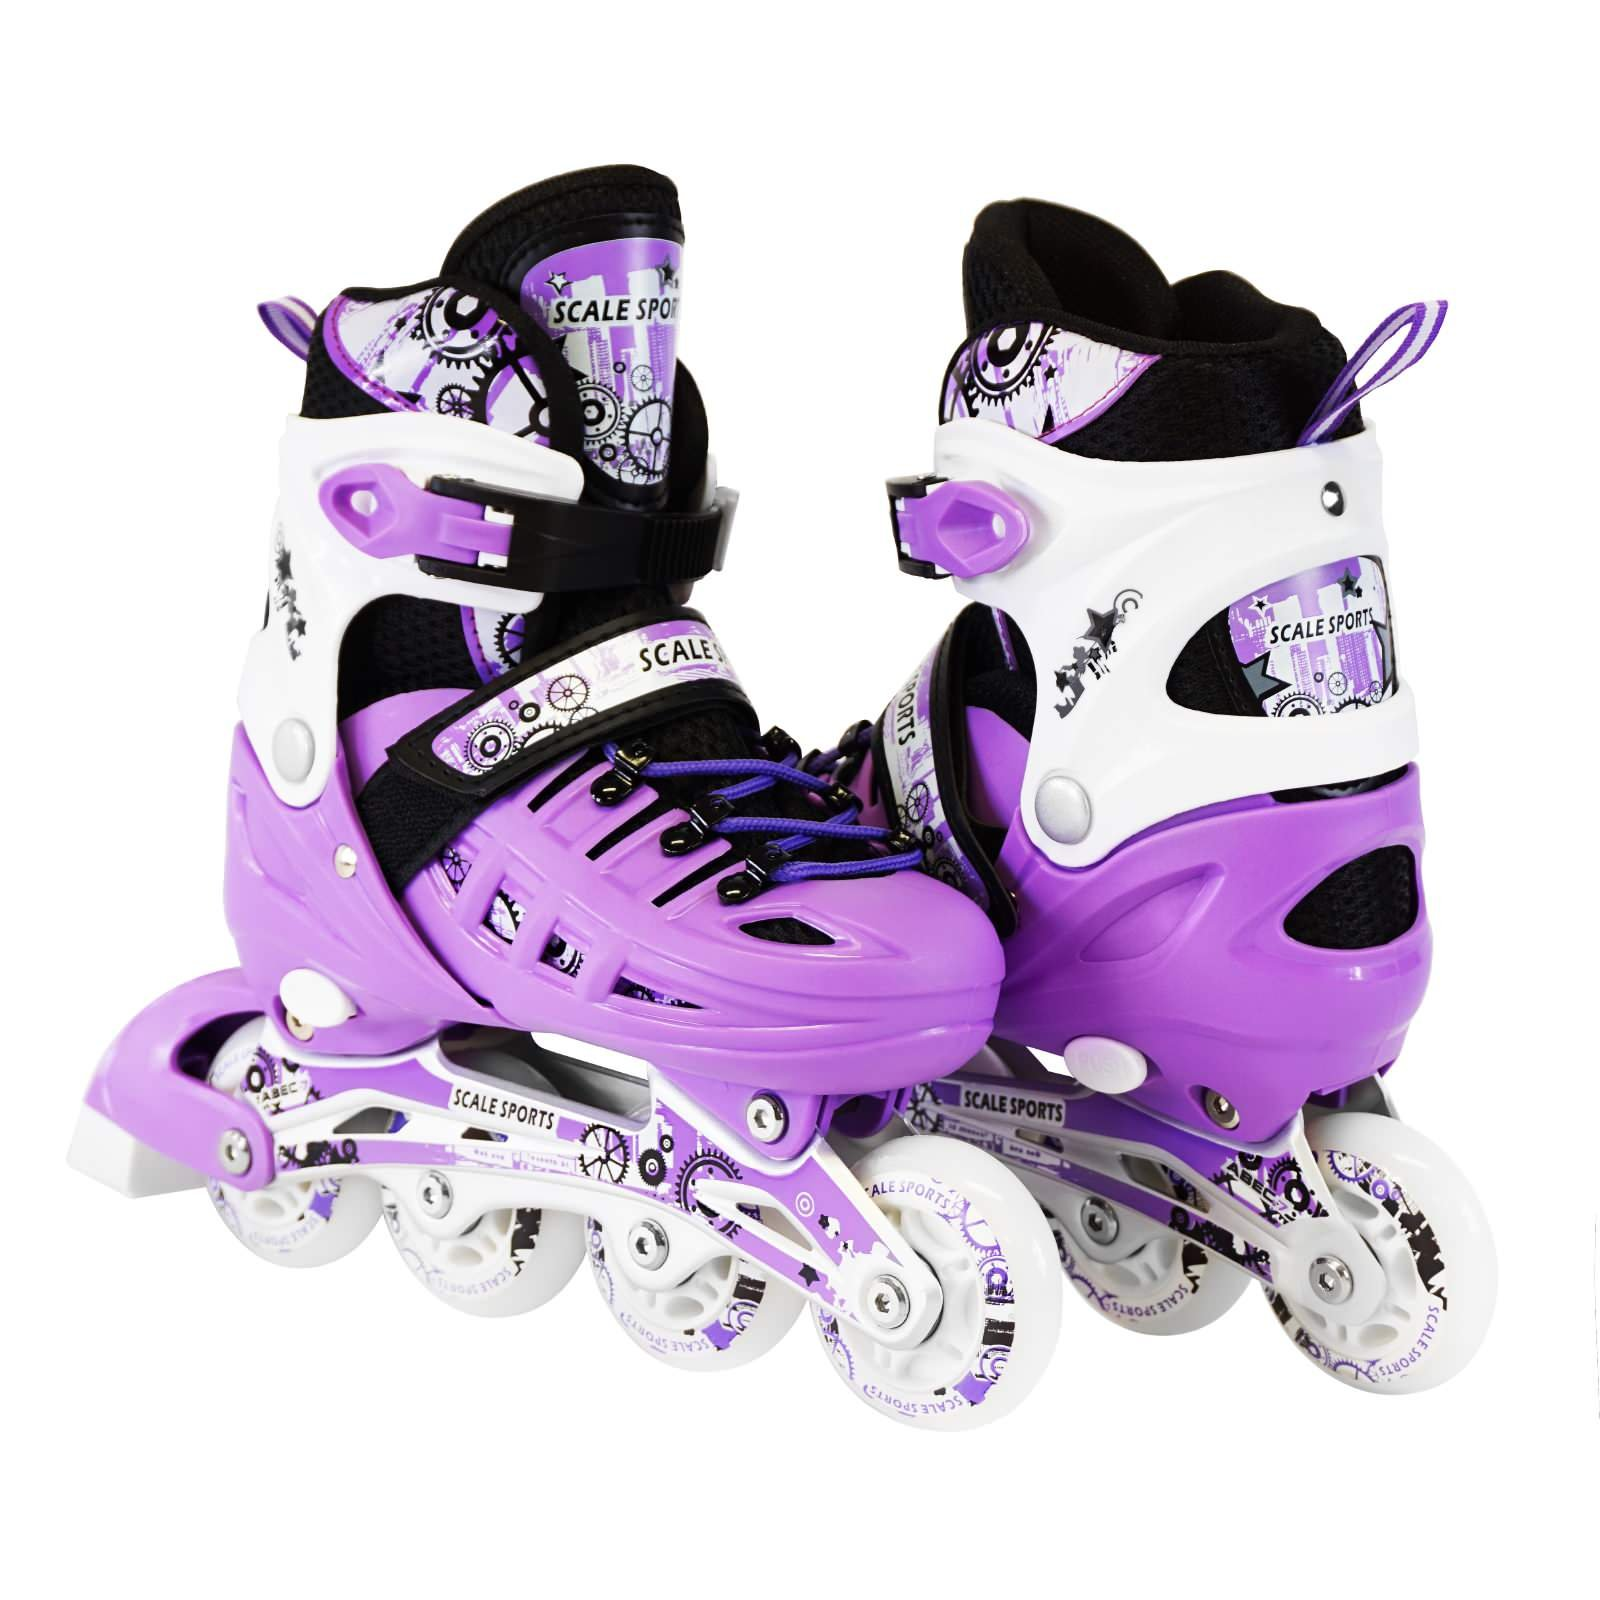 Kids Adjustable Inline Roller Blade Skates Scale Sports Purple Small Sizes Safe Durable Outdoor Featuring Illuminating Front Wheels 905